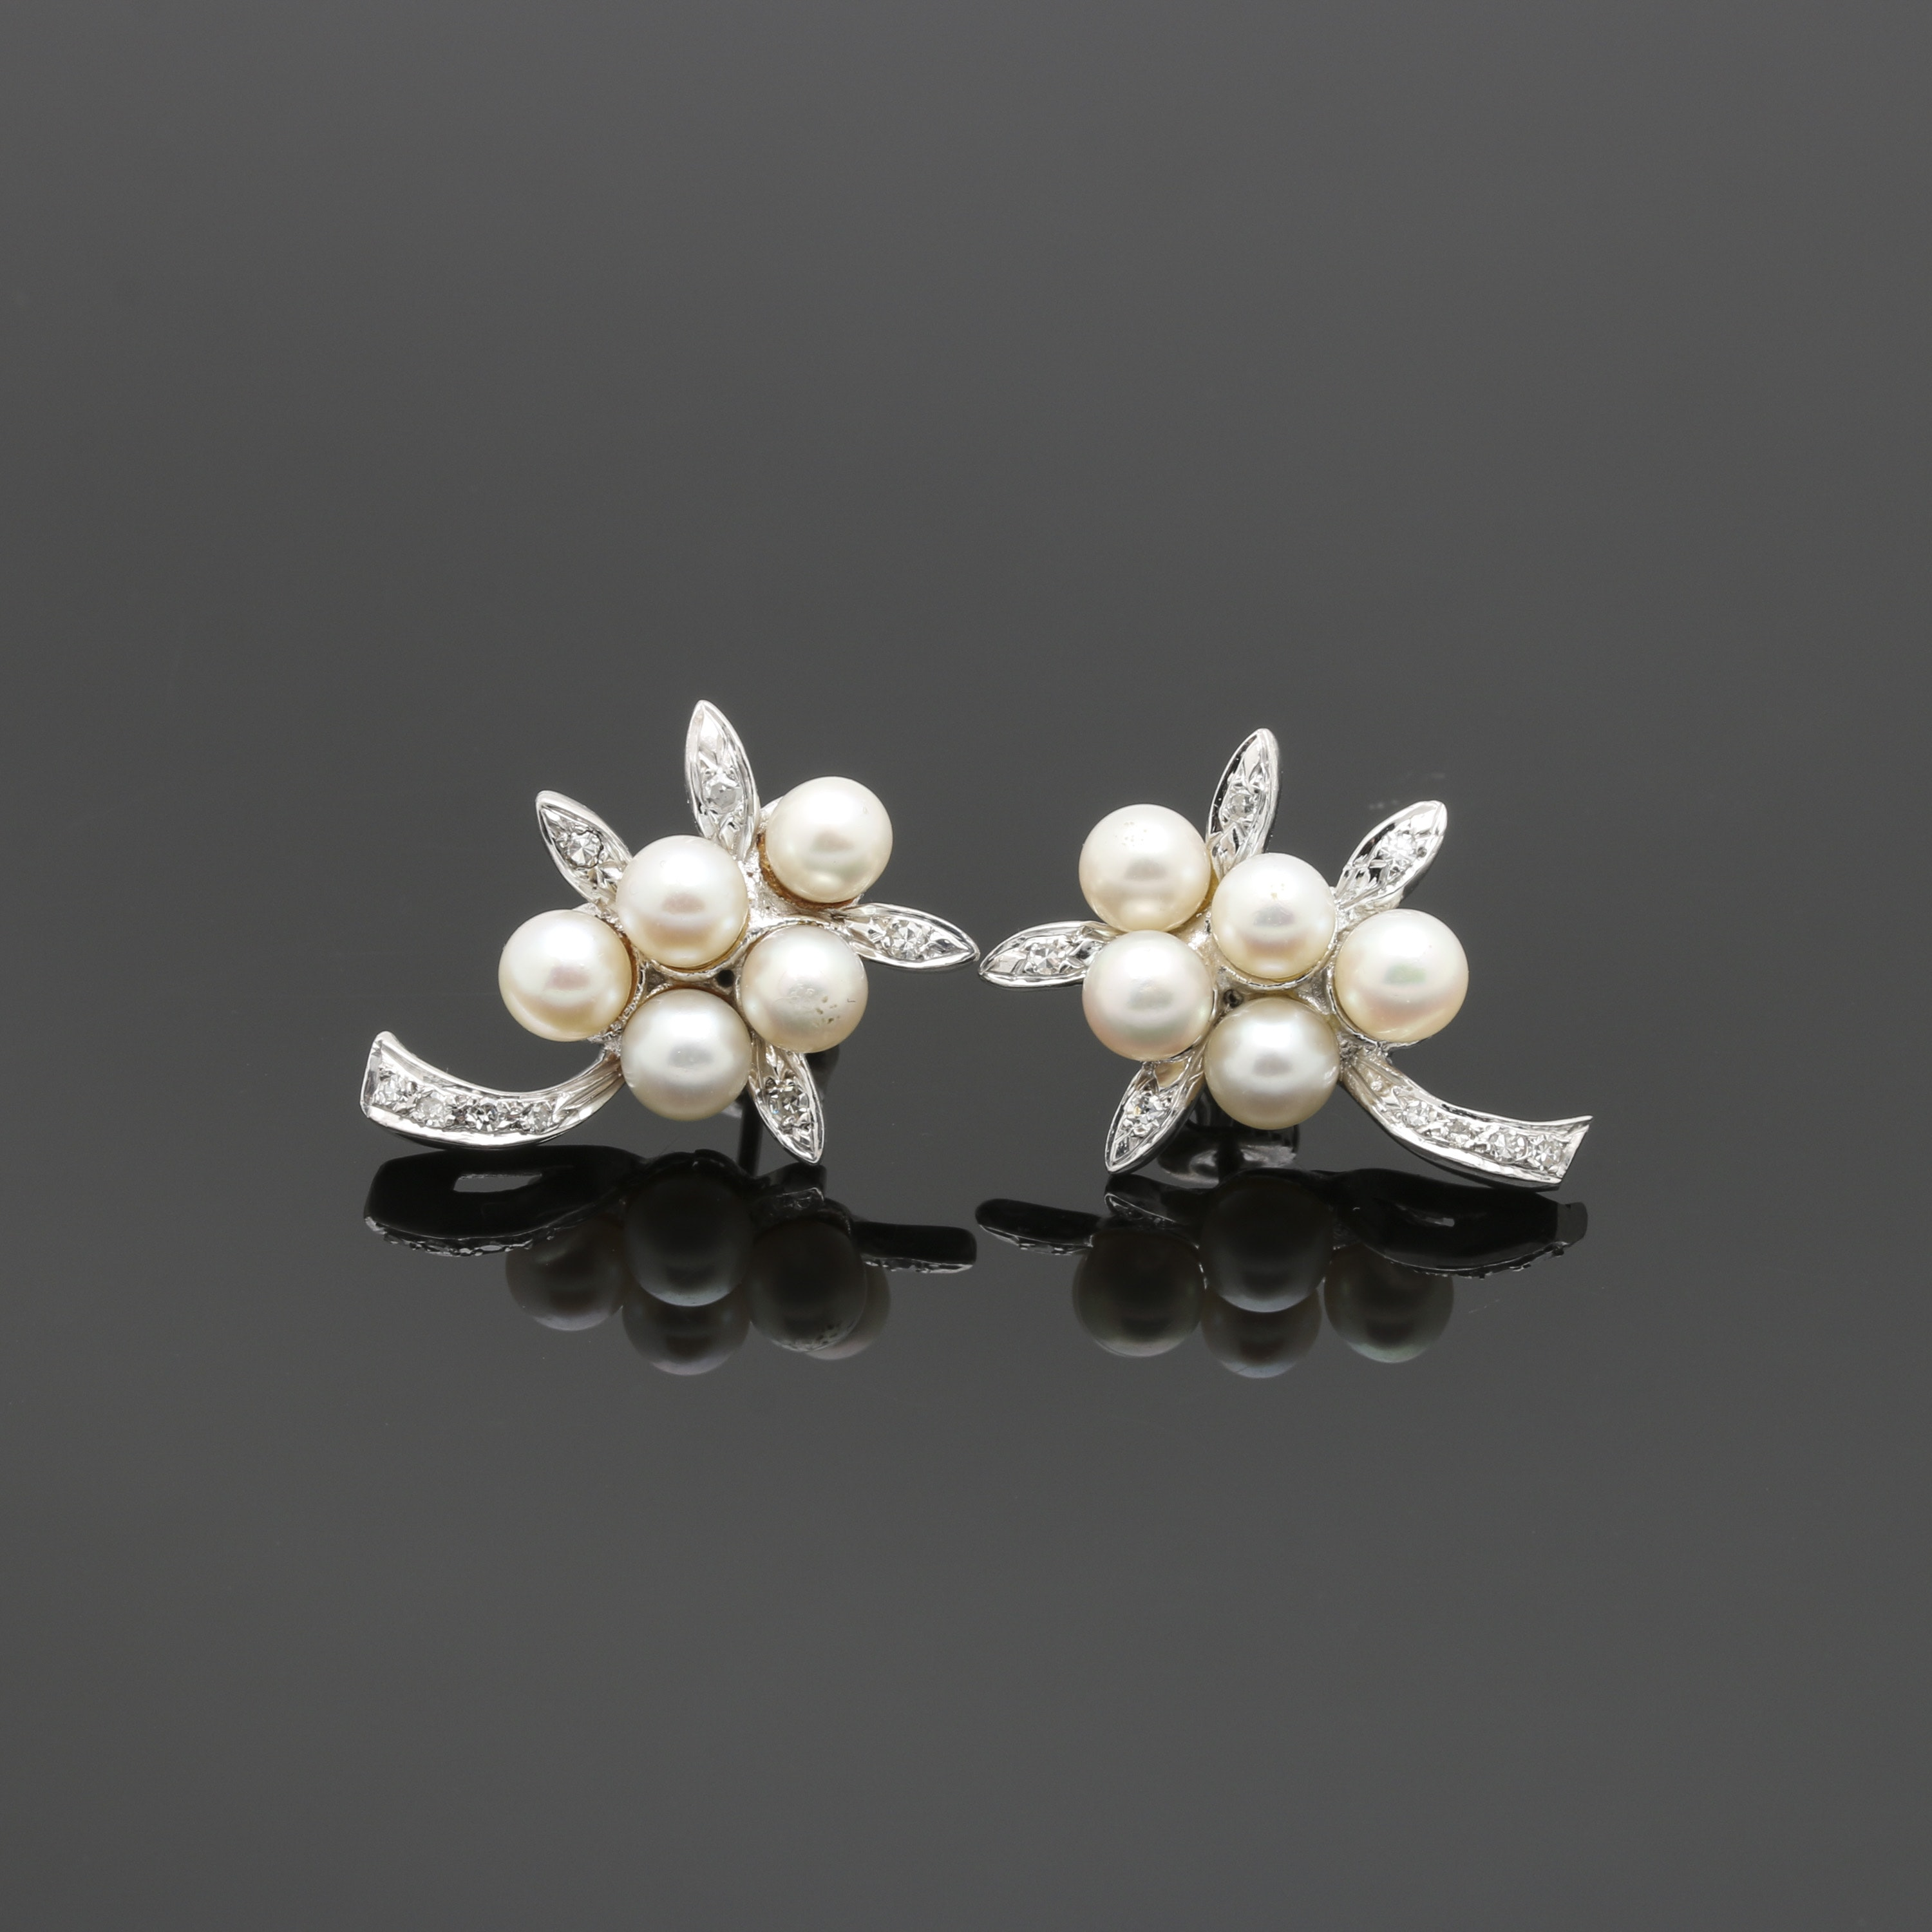 Palladium Cultured Pearl and Diamond Foliate Earrings with White Gold Accents